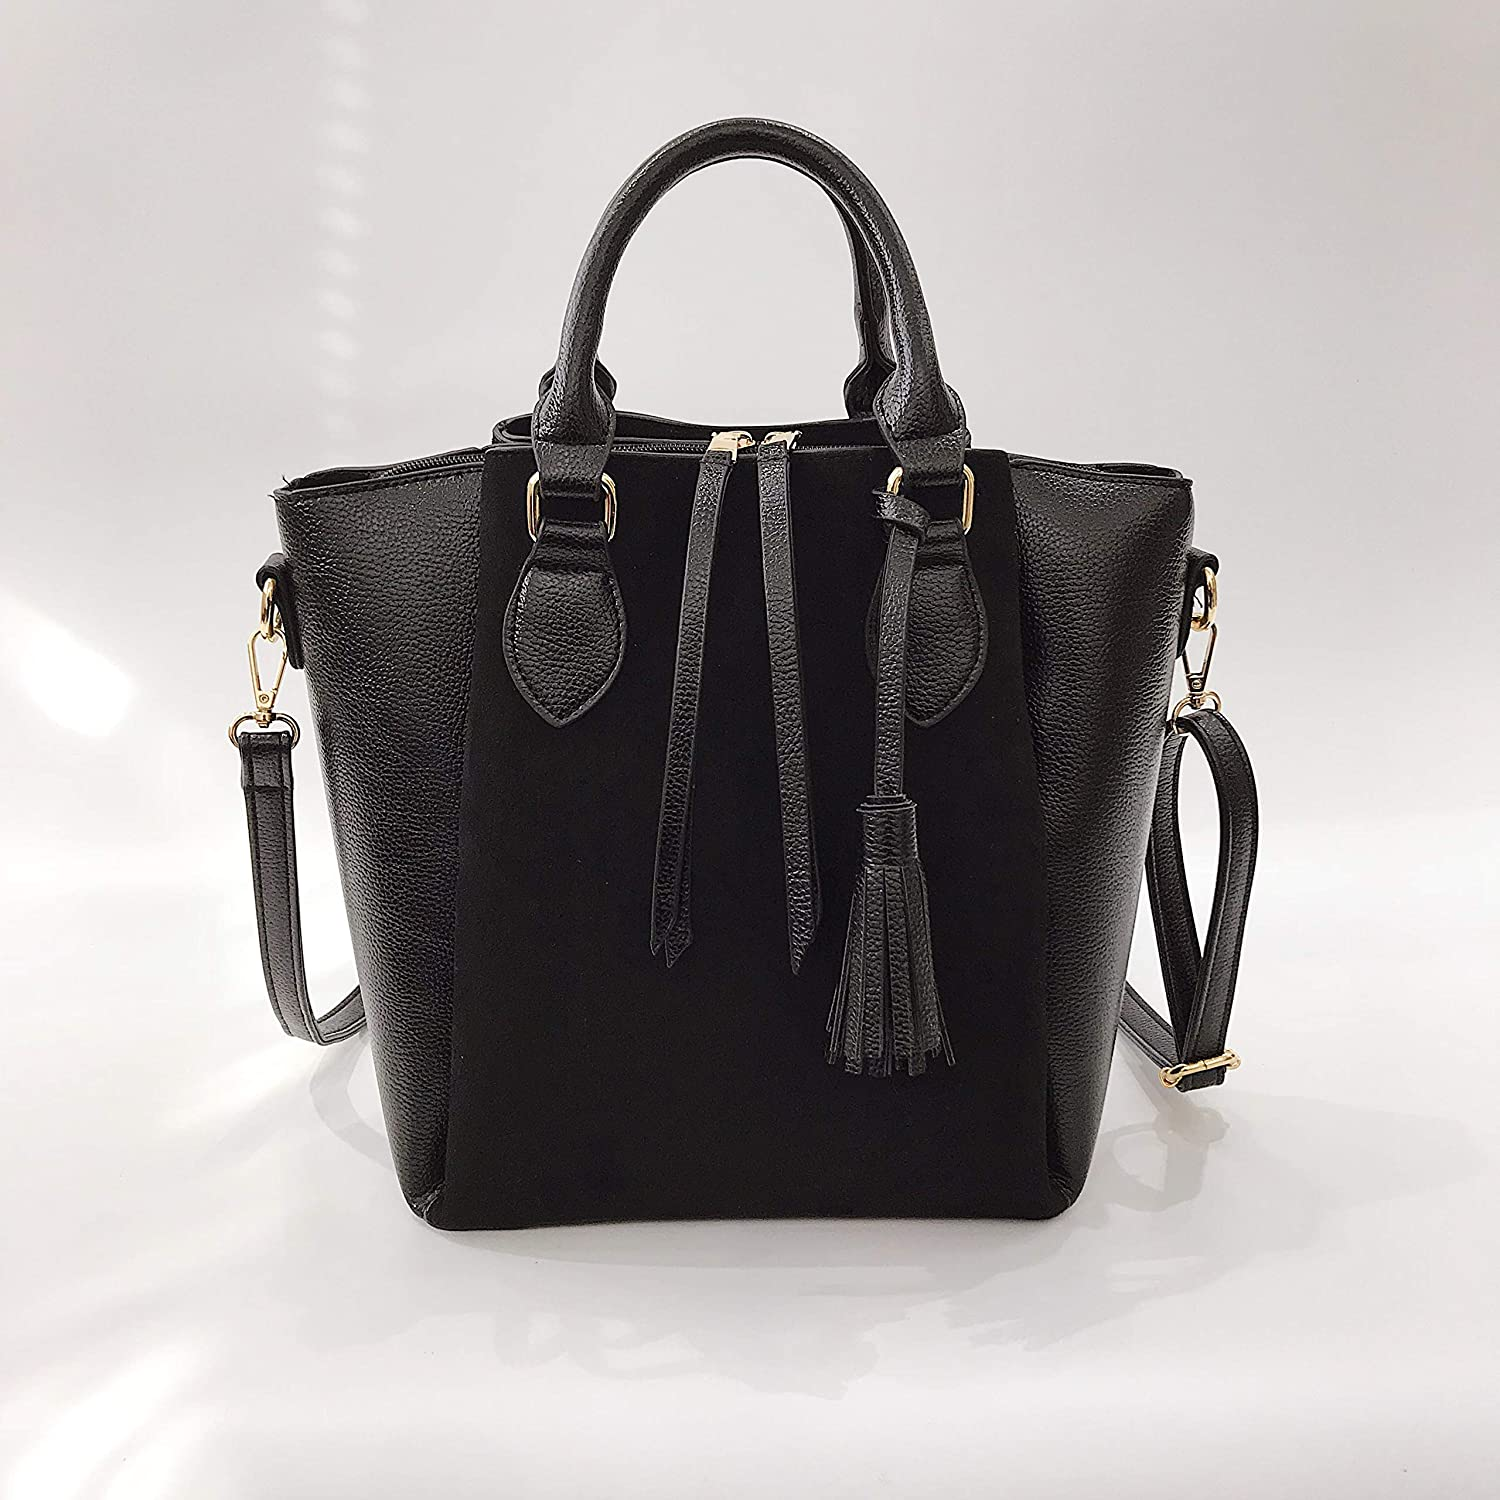 Montmo Leather Handbags for Women Top Handle Bags Ladys Purse with Tassels